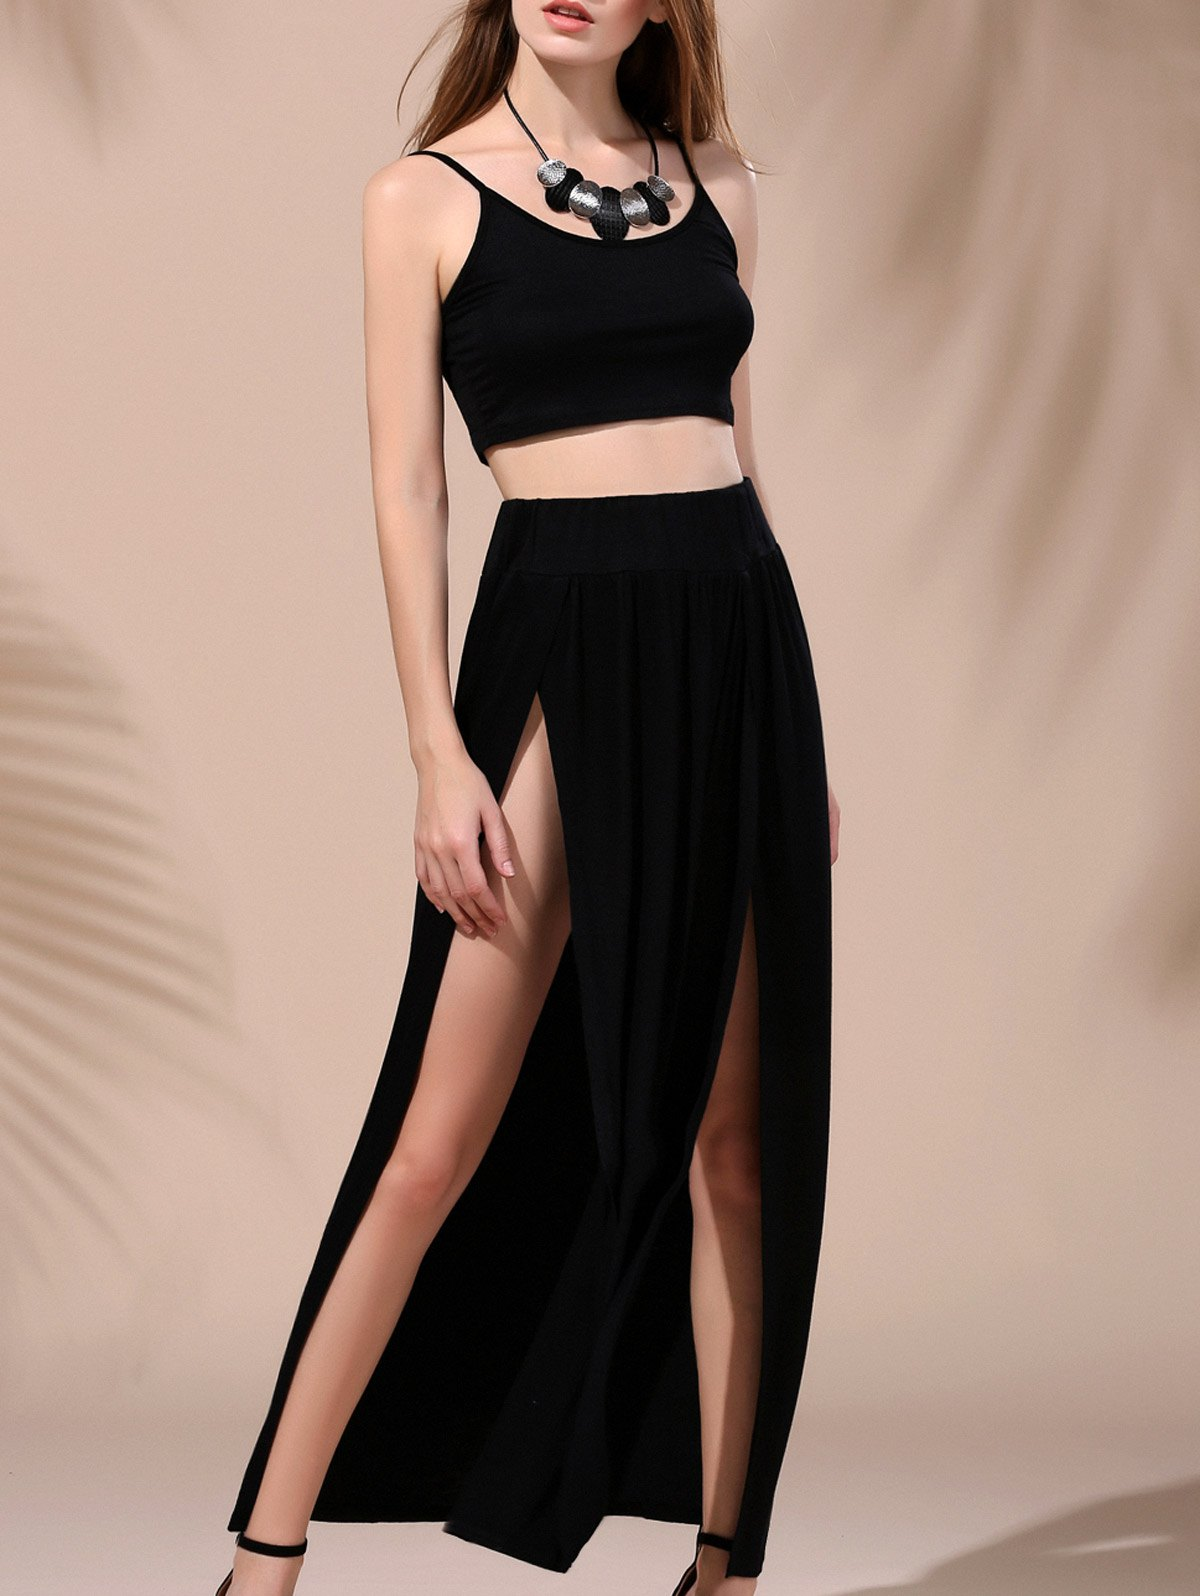 Sexy Low-Cut Cropped Tank Top and High Slit Maxi Skirt Twinset For Women